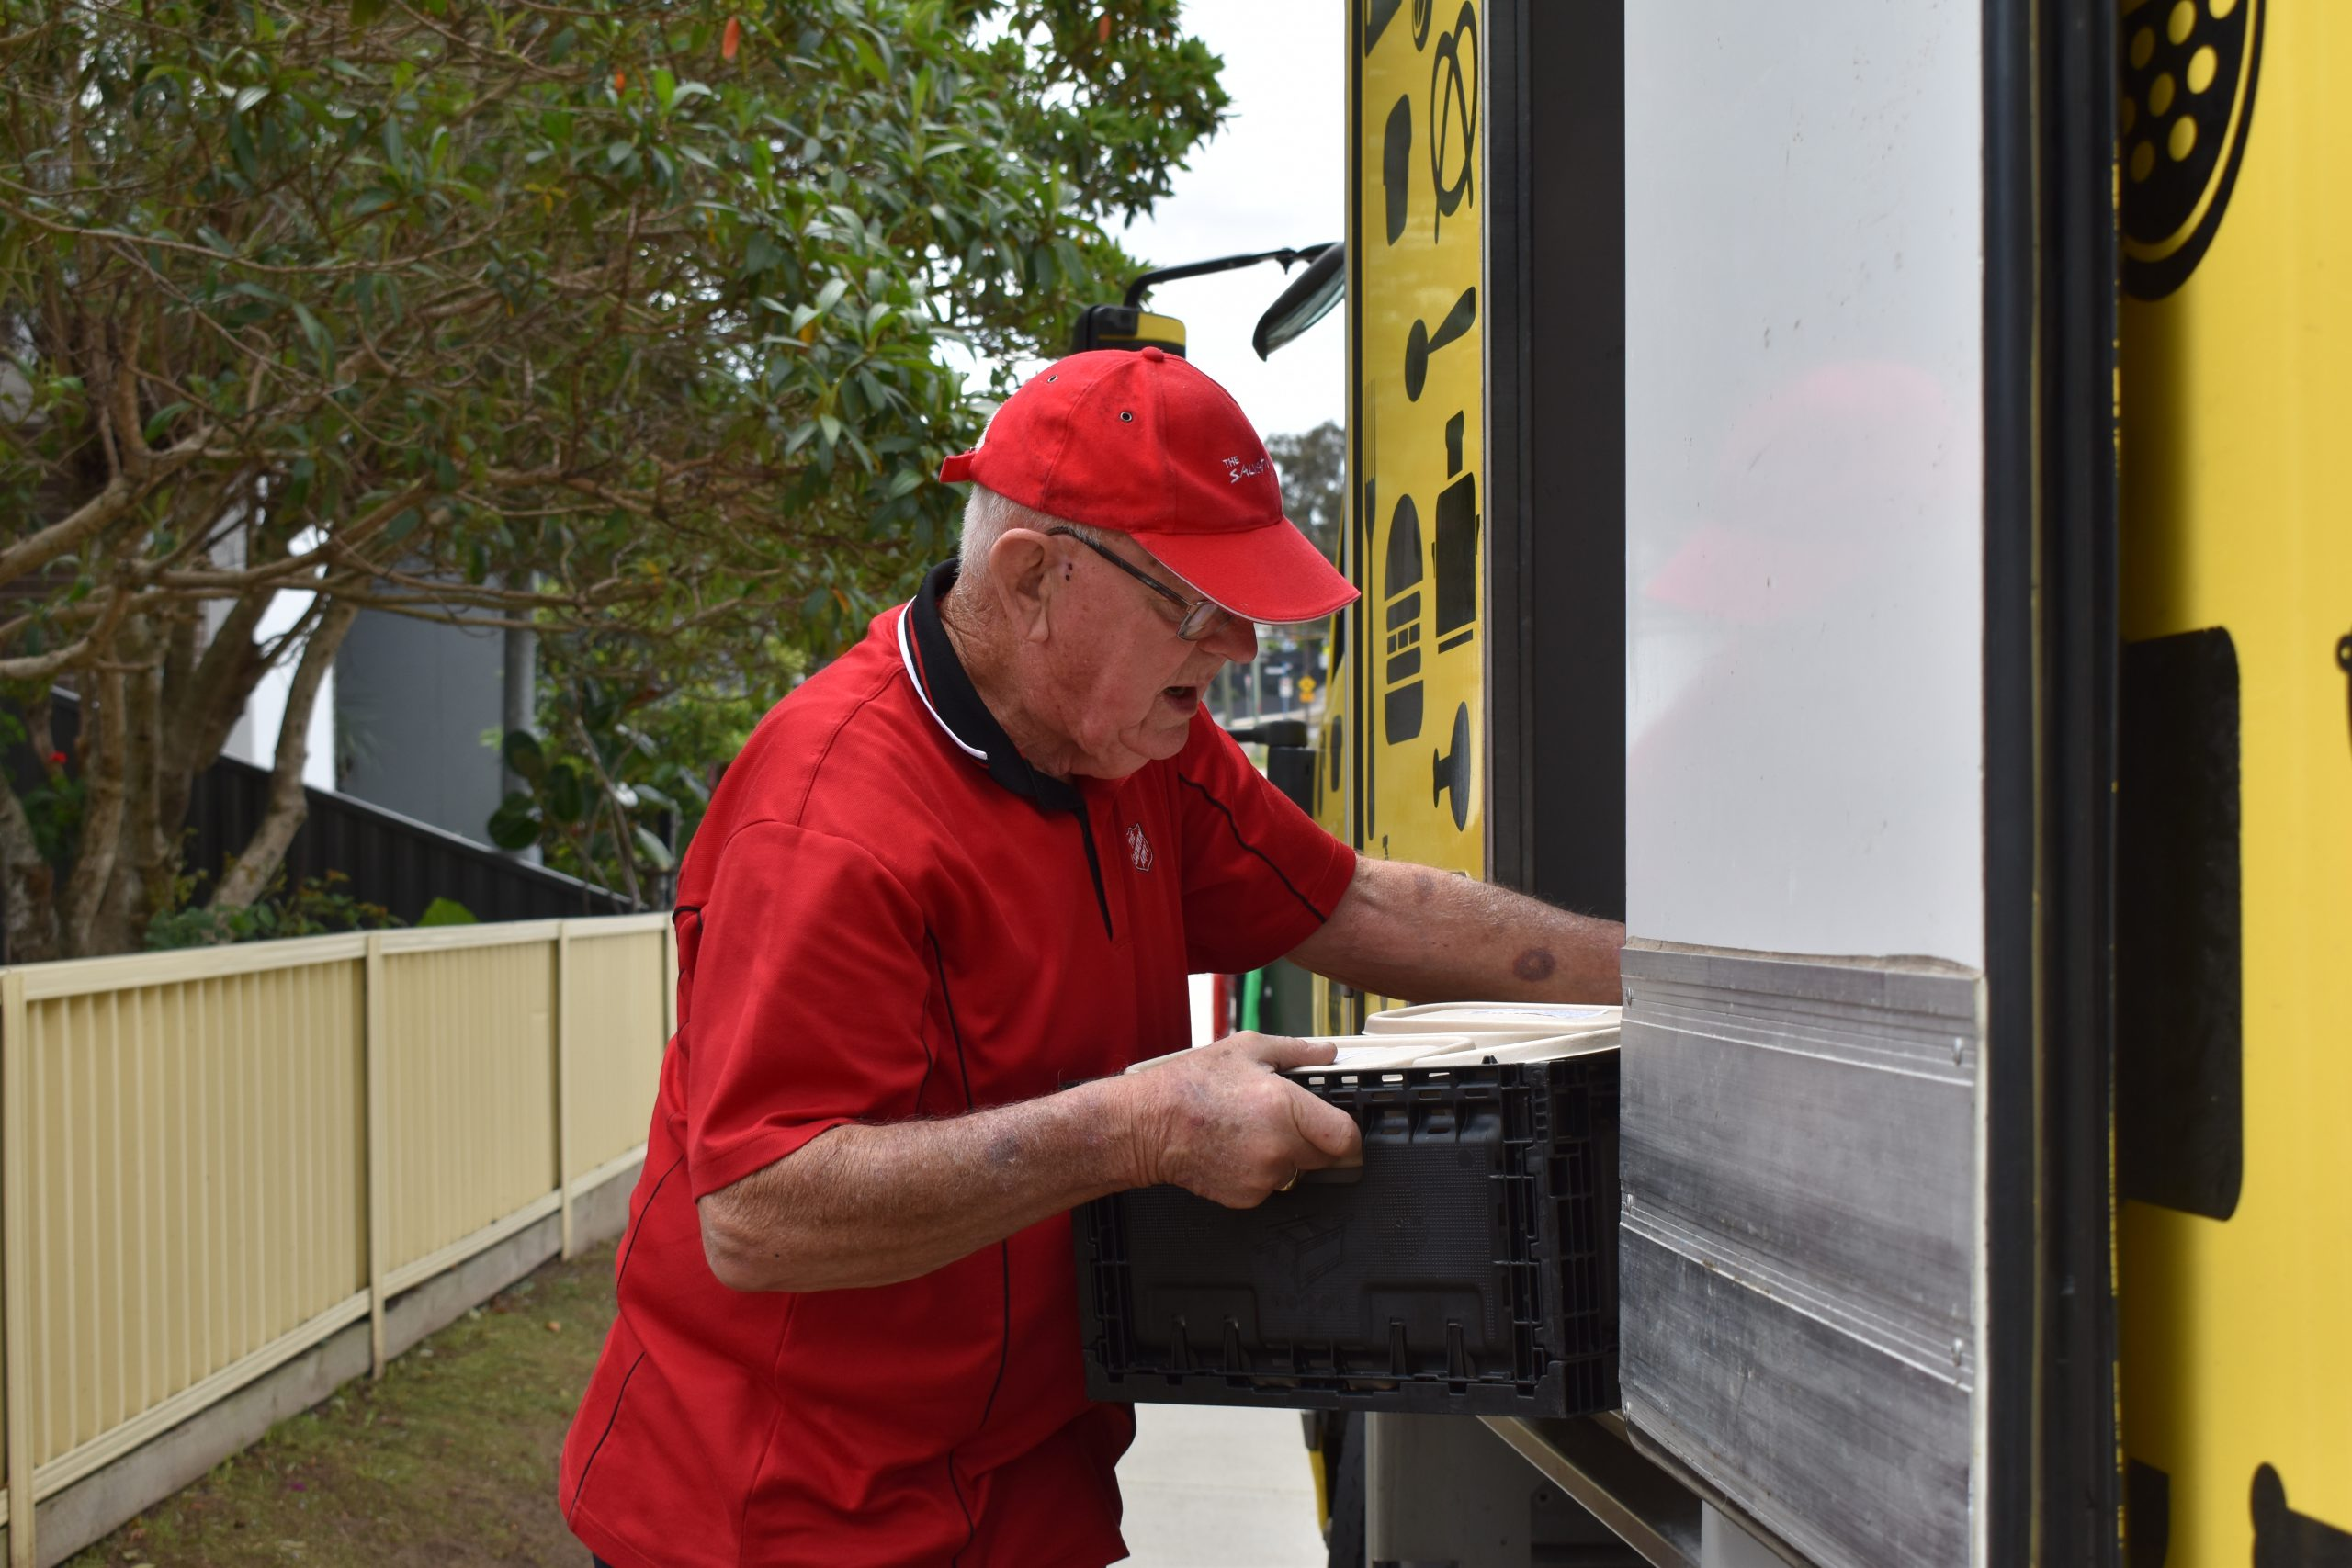 Hilton on the OzHarvest delivery